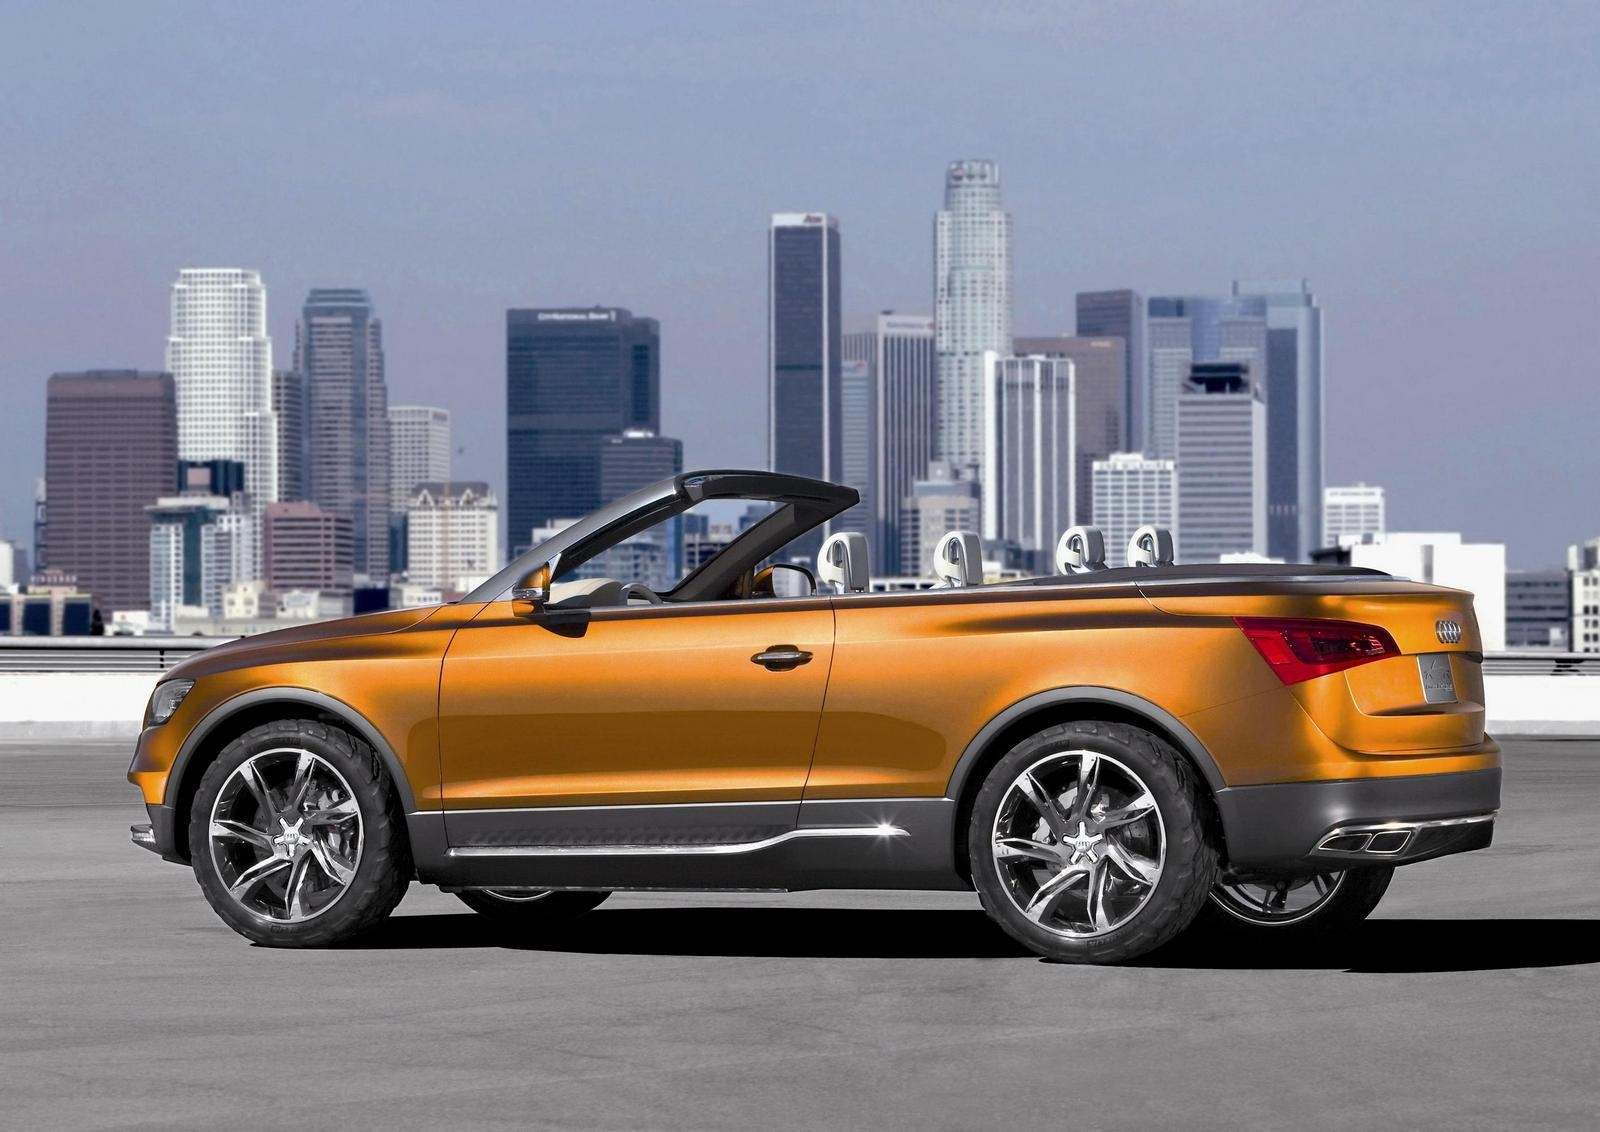 http://pictures.topspeed.com/IMG/crop/200711/audi-cross-cabriolet-7-1_1600x0w.jpg